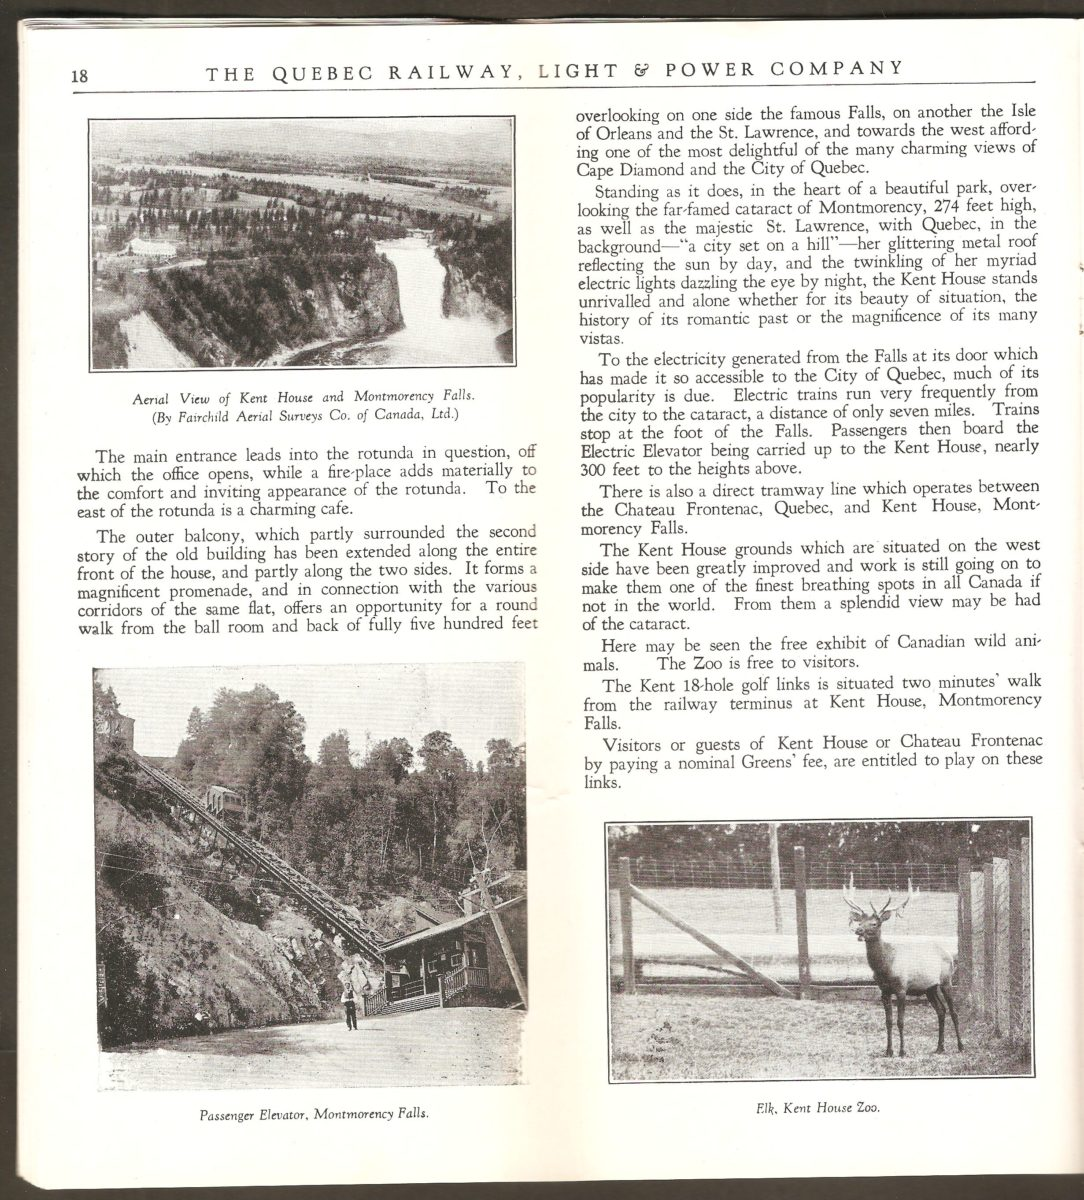 Sur cette autre double page de la brochure de la Quebec Railway Light & Power Co., se trouvent des photographies montrant le funiculaire et un wapiti du zoo Holt Renfrew.